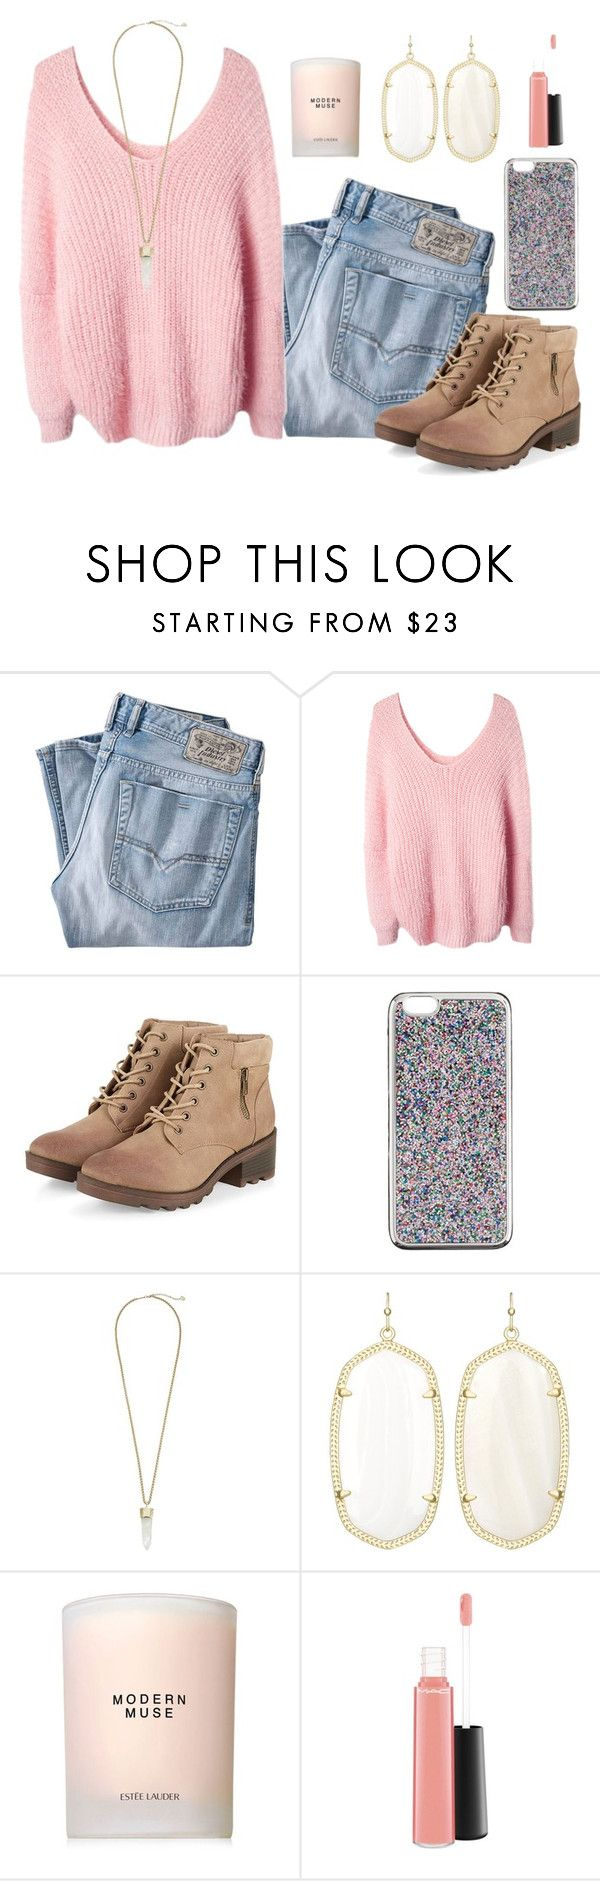 """""""I feel anxious and I don't know why """" by madelyn-abigail ❤ liked on Polyvore featuring Diesel, J.Crew, Kendra Scott, Estée Lauder, MAC Cosmetics, women's clothing, women's fashion, women, female and woman"""